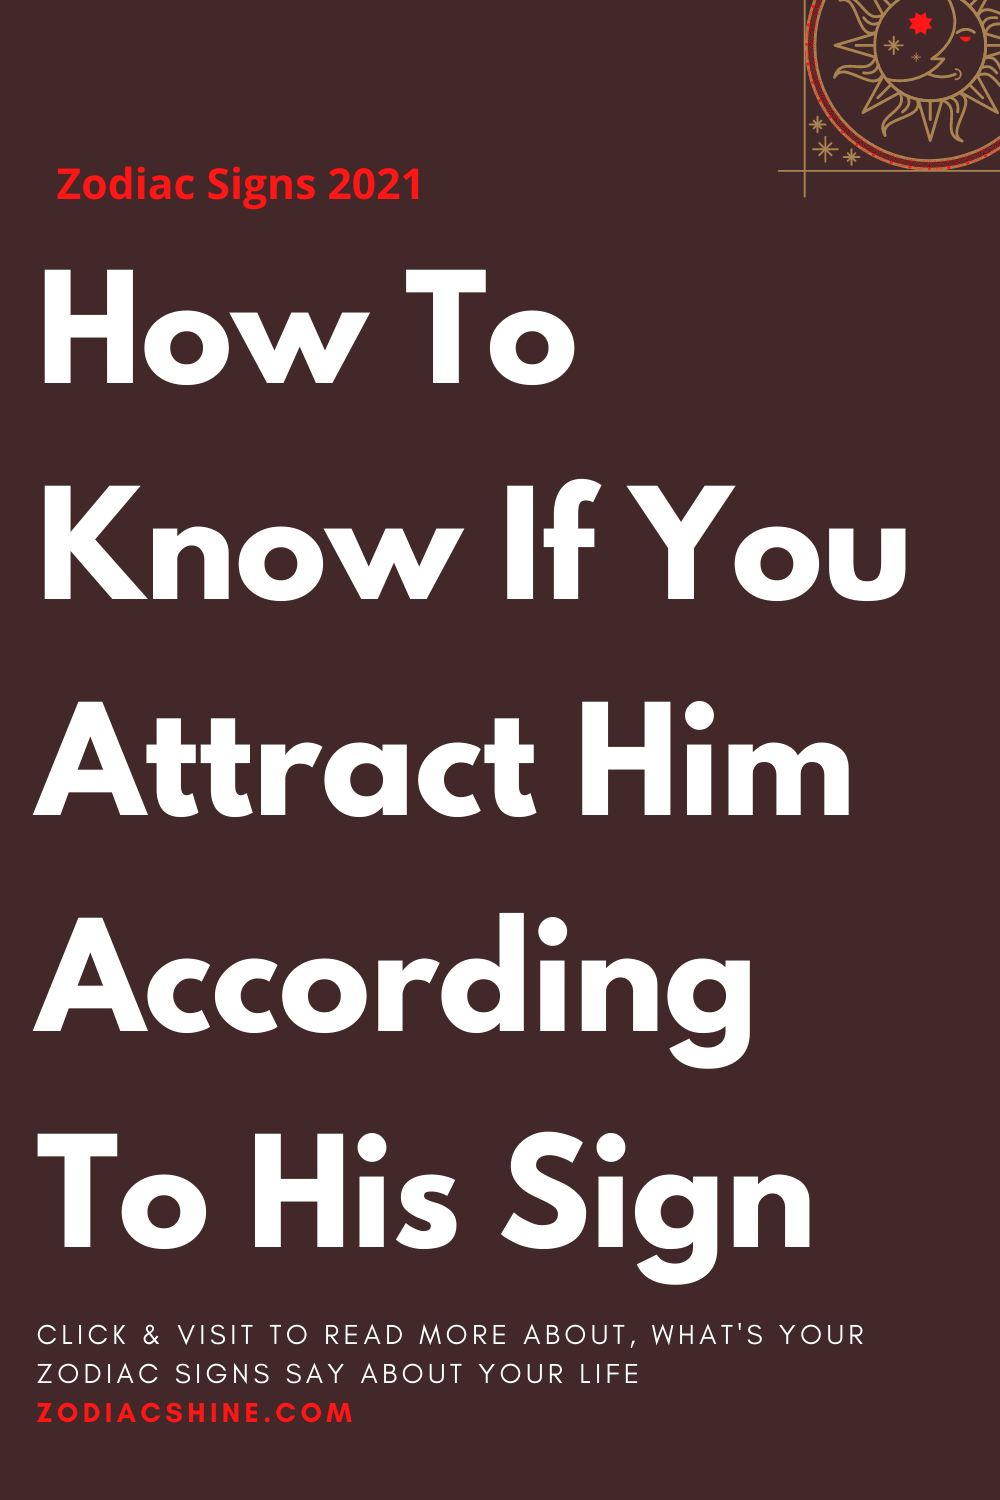 How To Know If You Attract Him According To His Sign